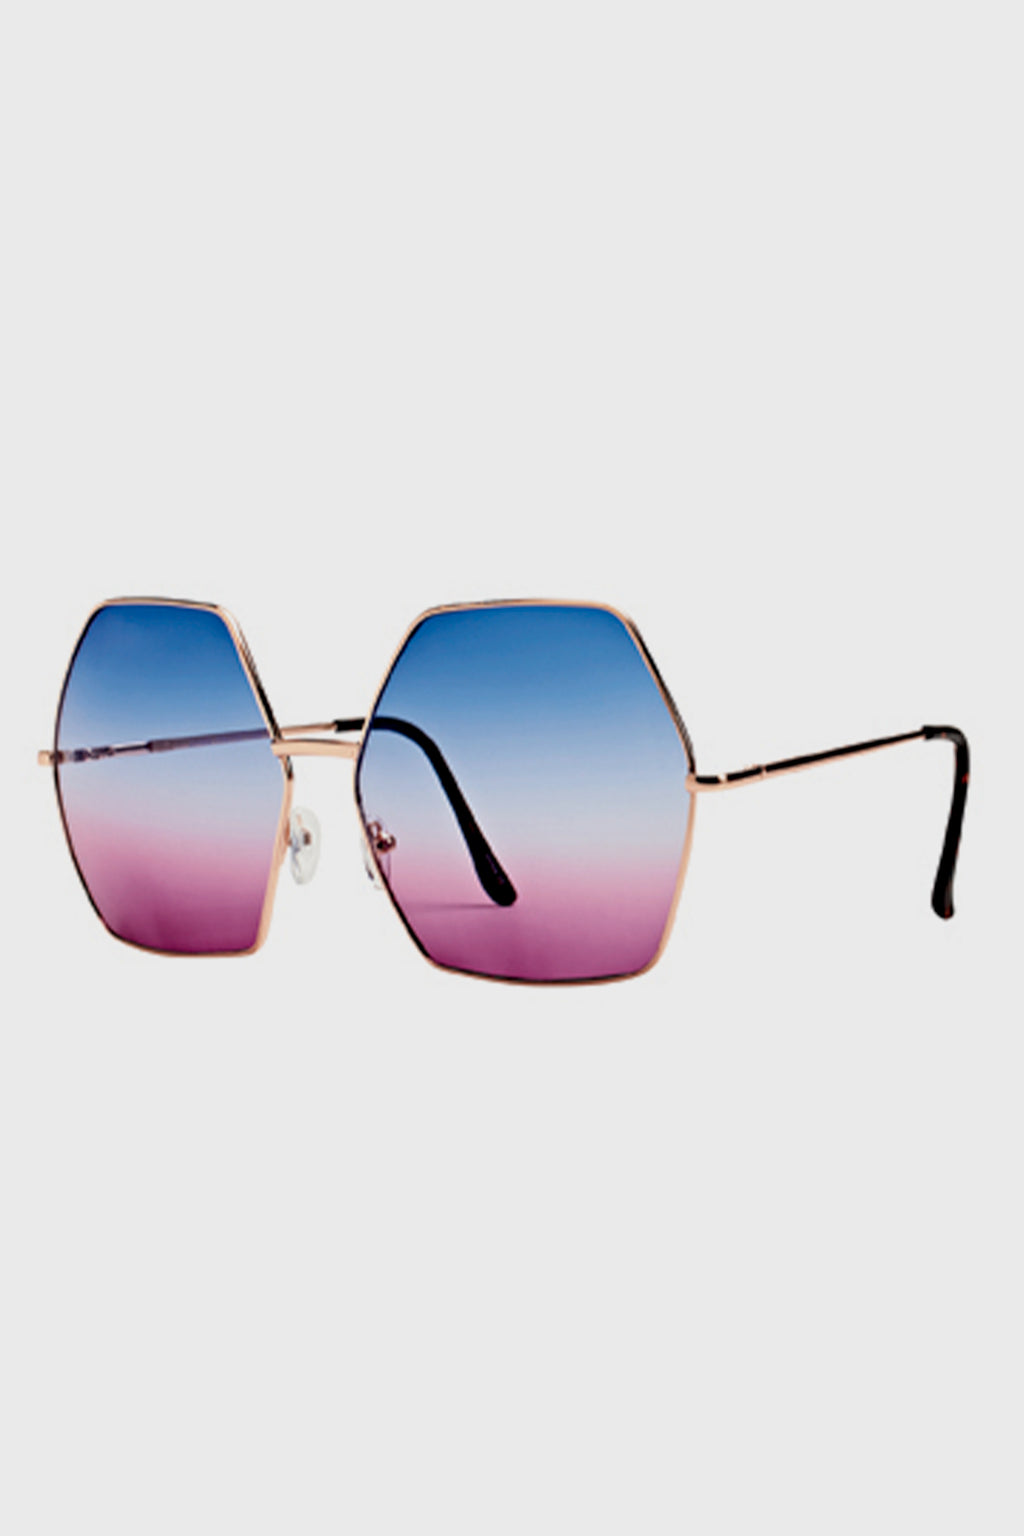 Women's Metal Oversized Hexagon Frame w/ Multi Color Tint (BSG1056 )-SUNGLASSES-BaySky